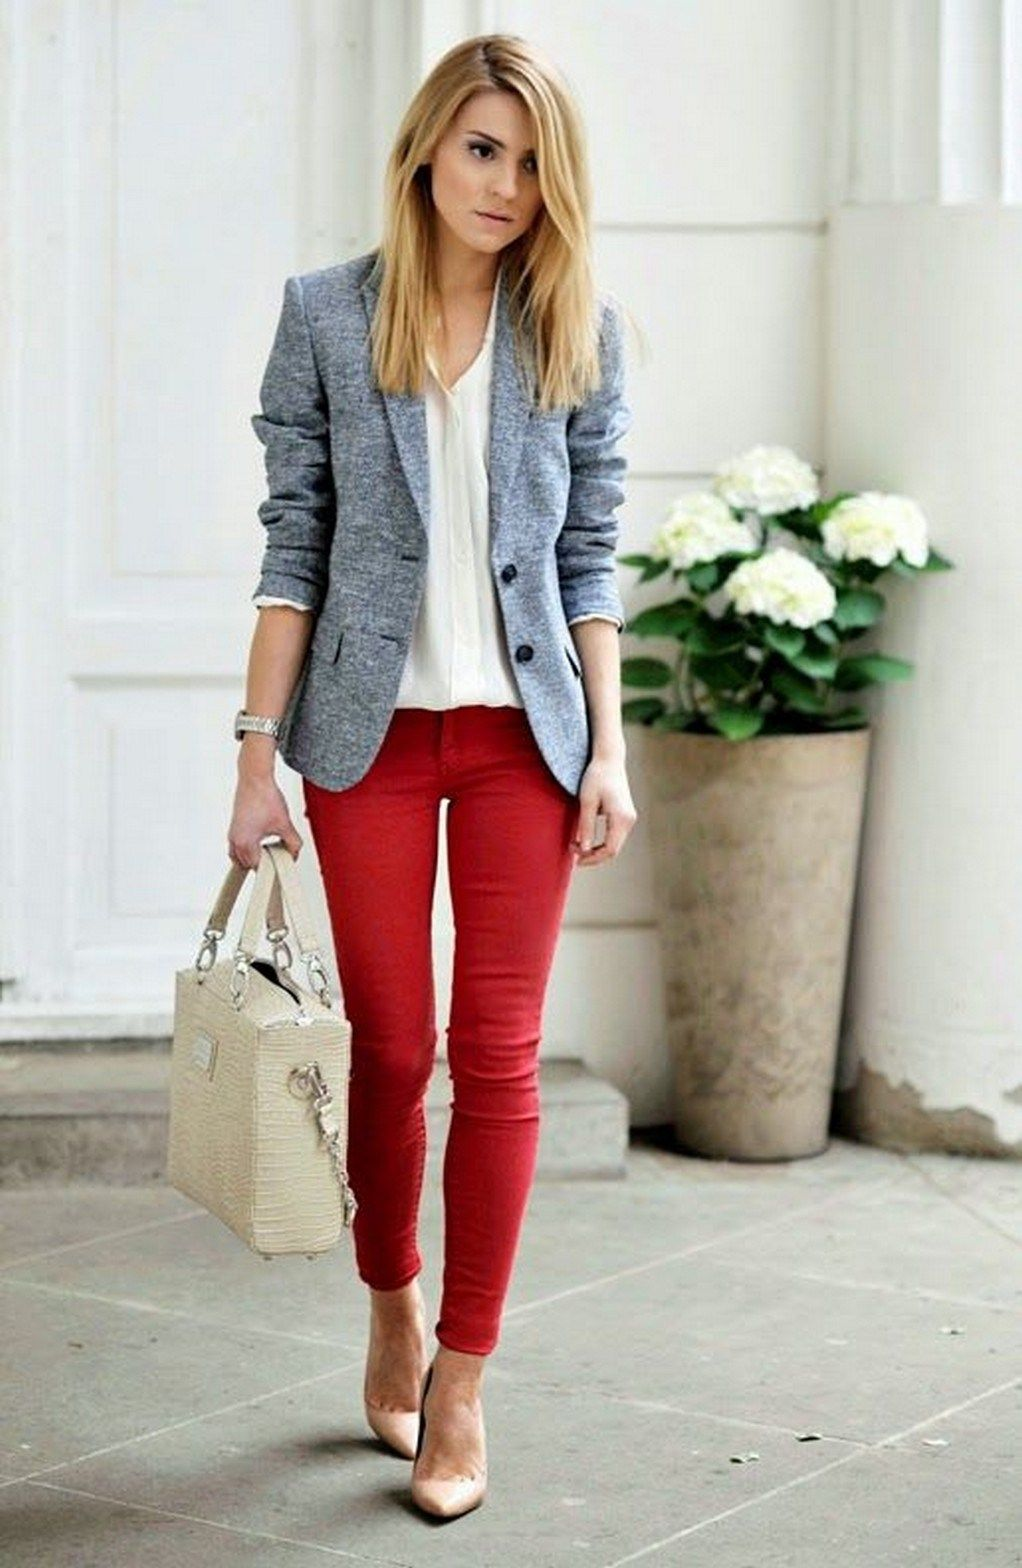 Casual blazer outfit for women (217) | Work outfits women